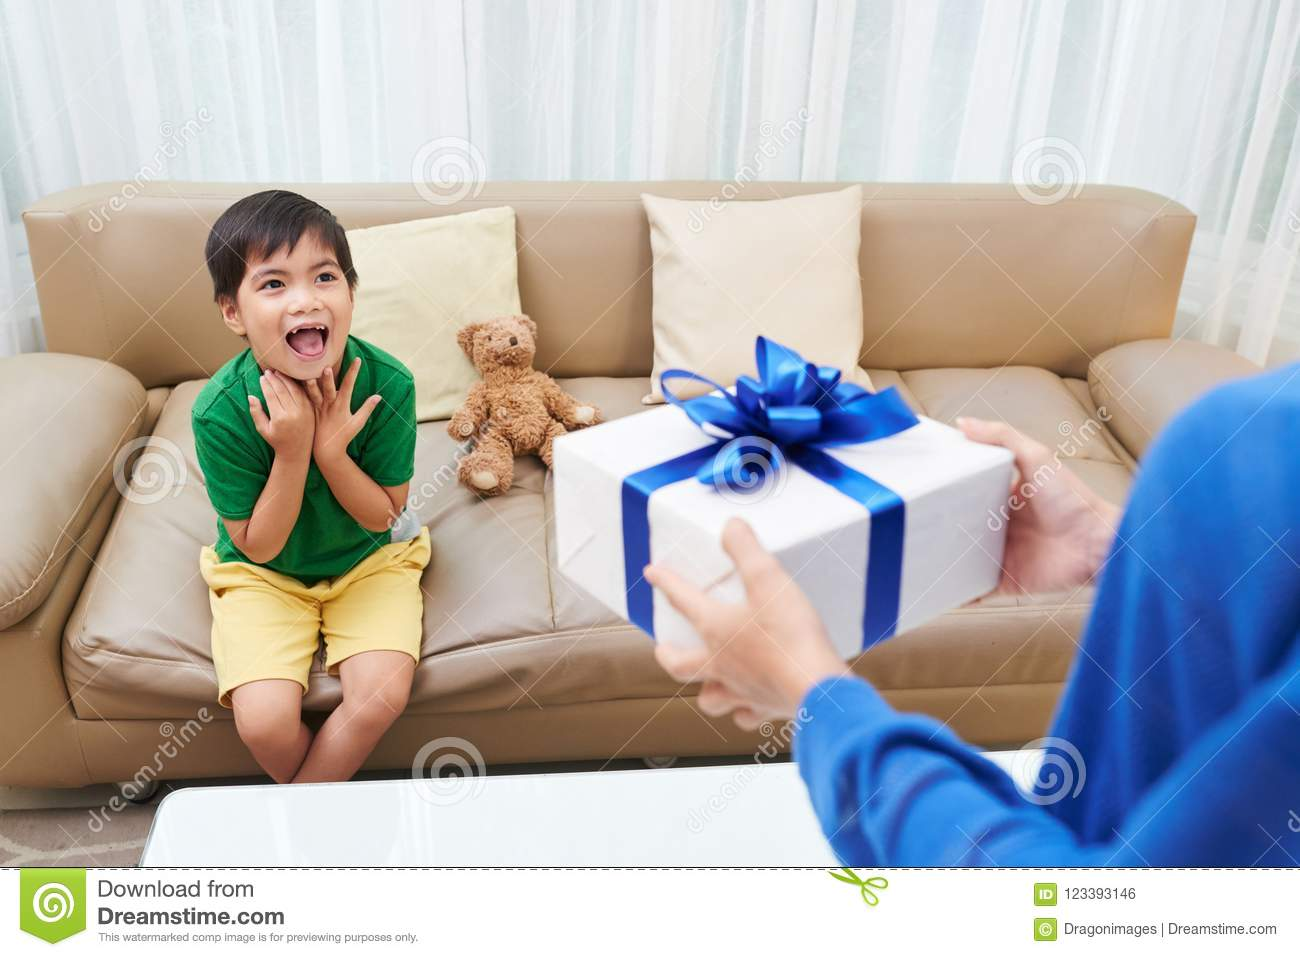 Young Vietnamese Men Excited To Accept Birthday Gift From His Mother